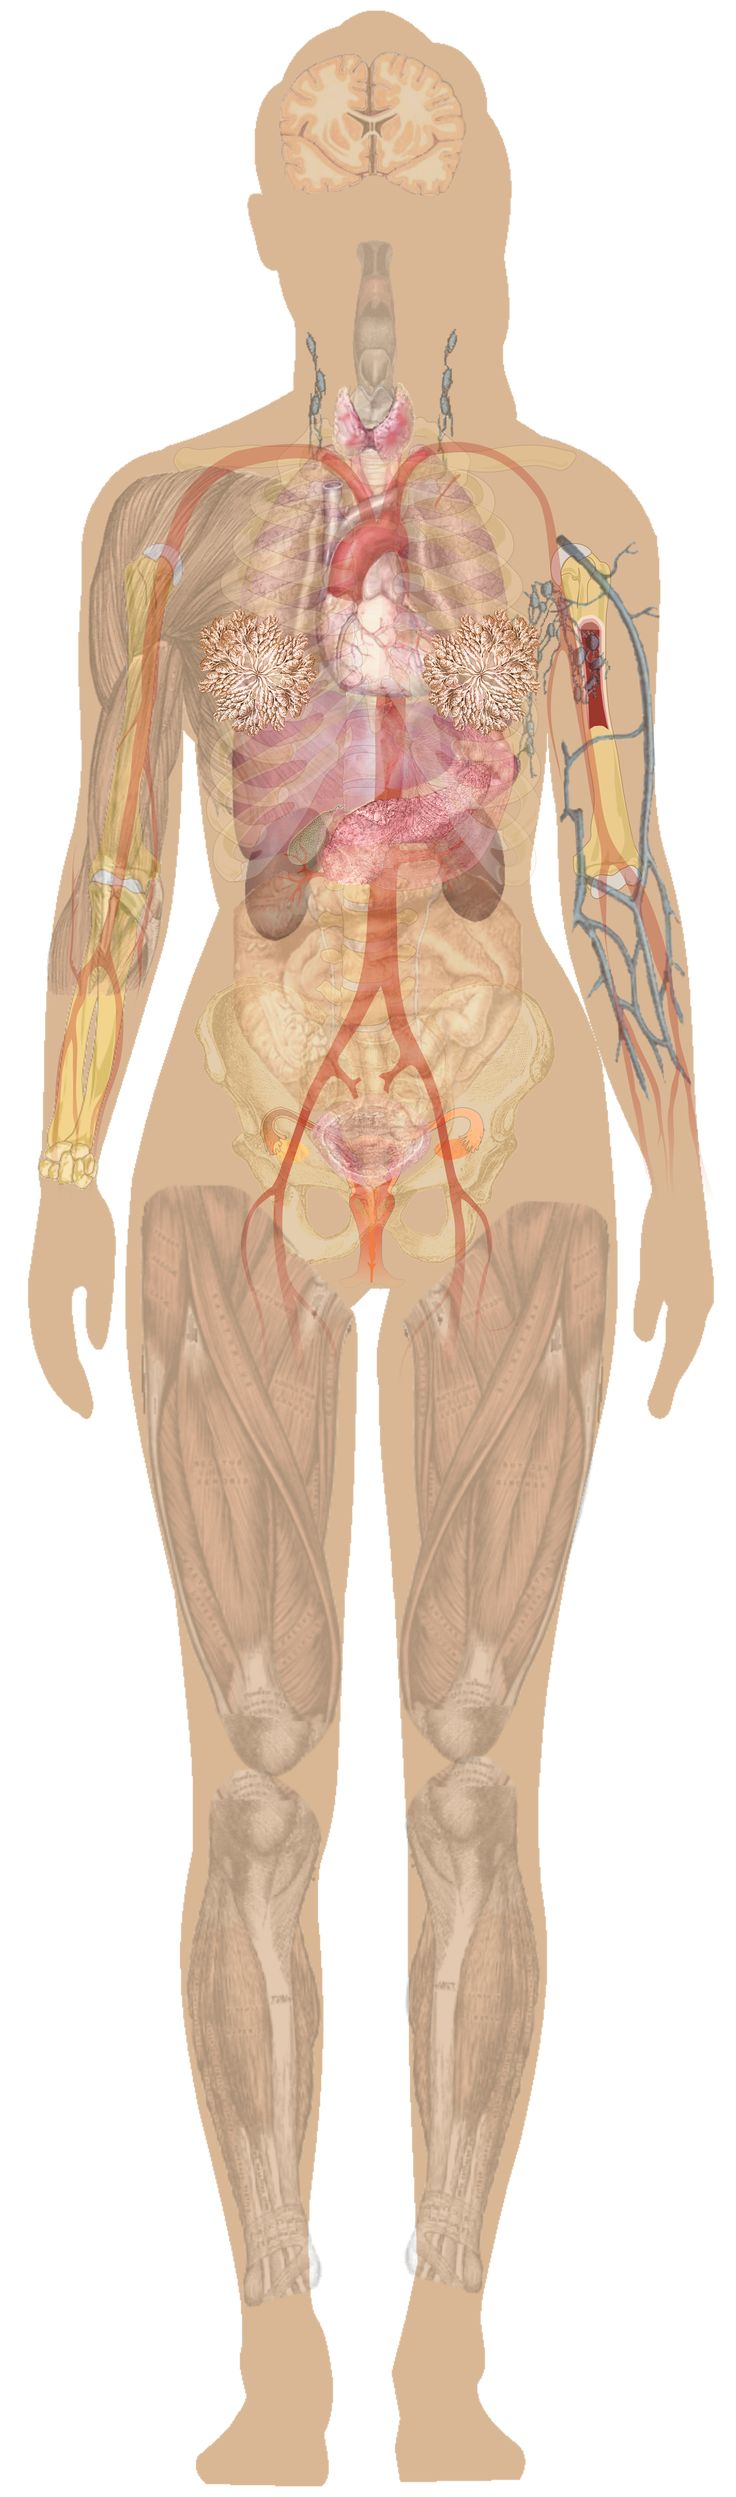 14 Best Images About Human Anatomy Female On Pinterest